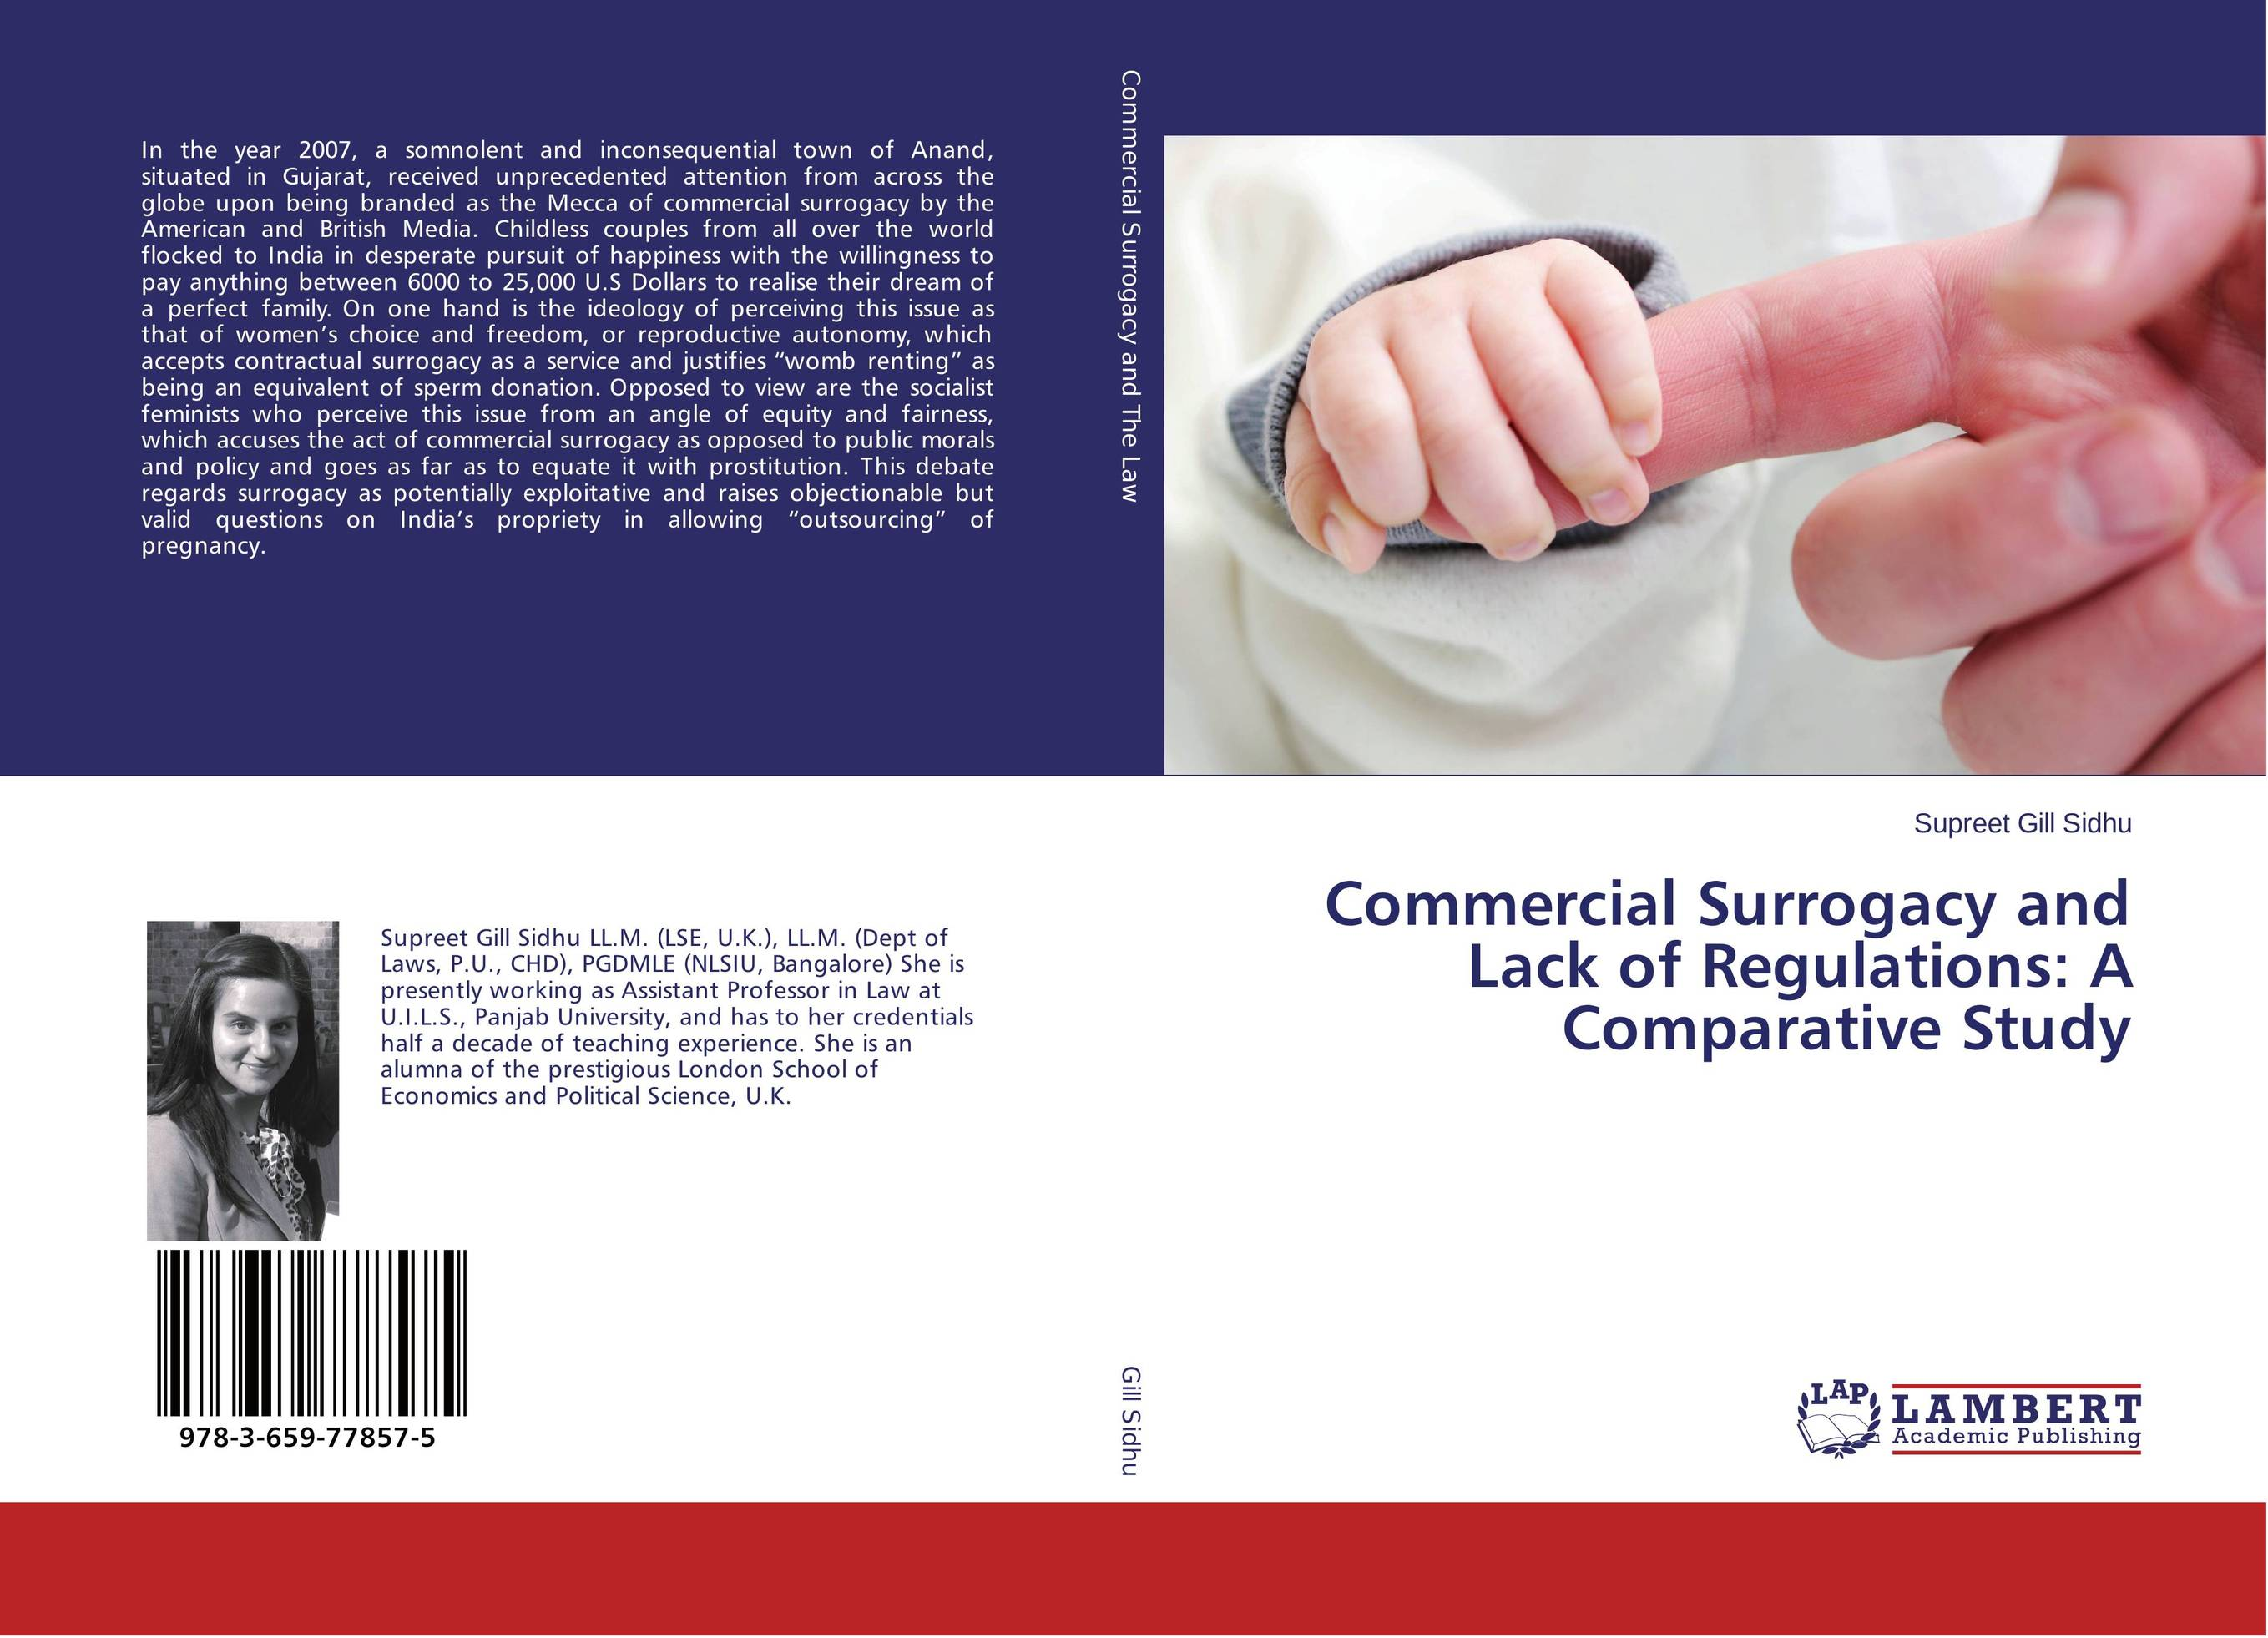 commercial surrogacy essay Commercial surrogacy and especially international surrogacy is a difficult matter it seems more ethical when the egg and sperm of a couple are fertilized outside the womb, and then the embryo is implanted in the surrogate mom.